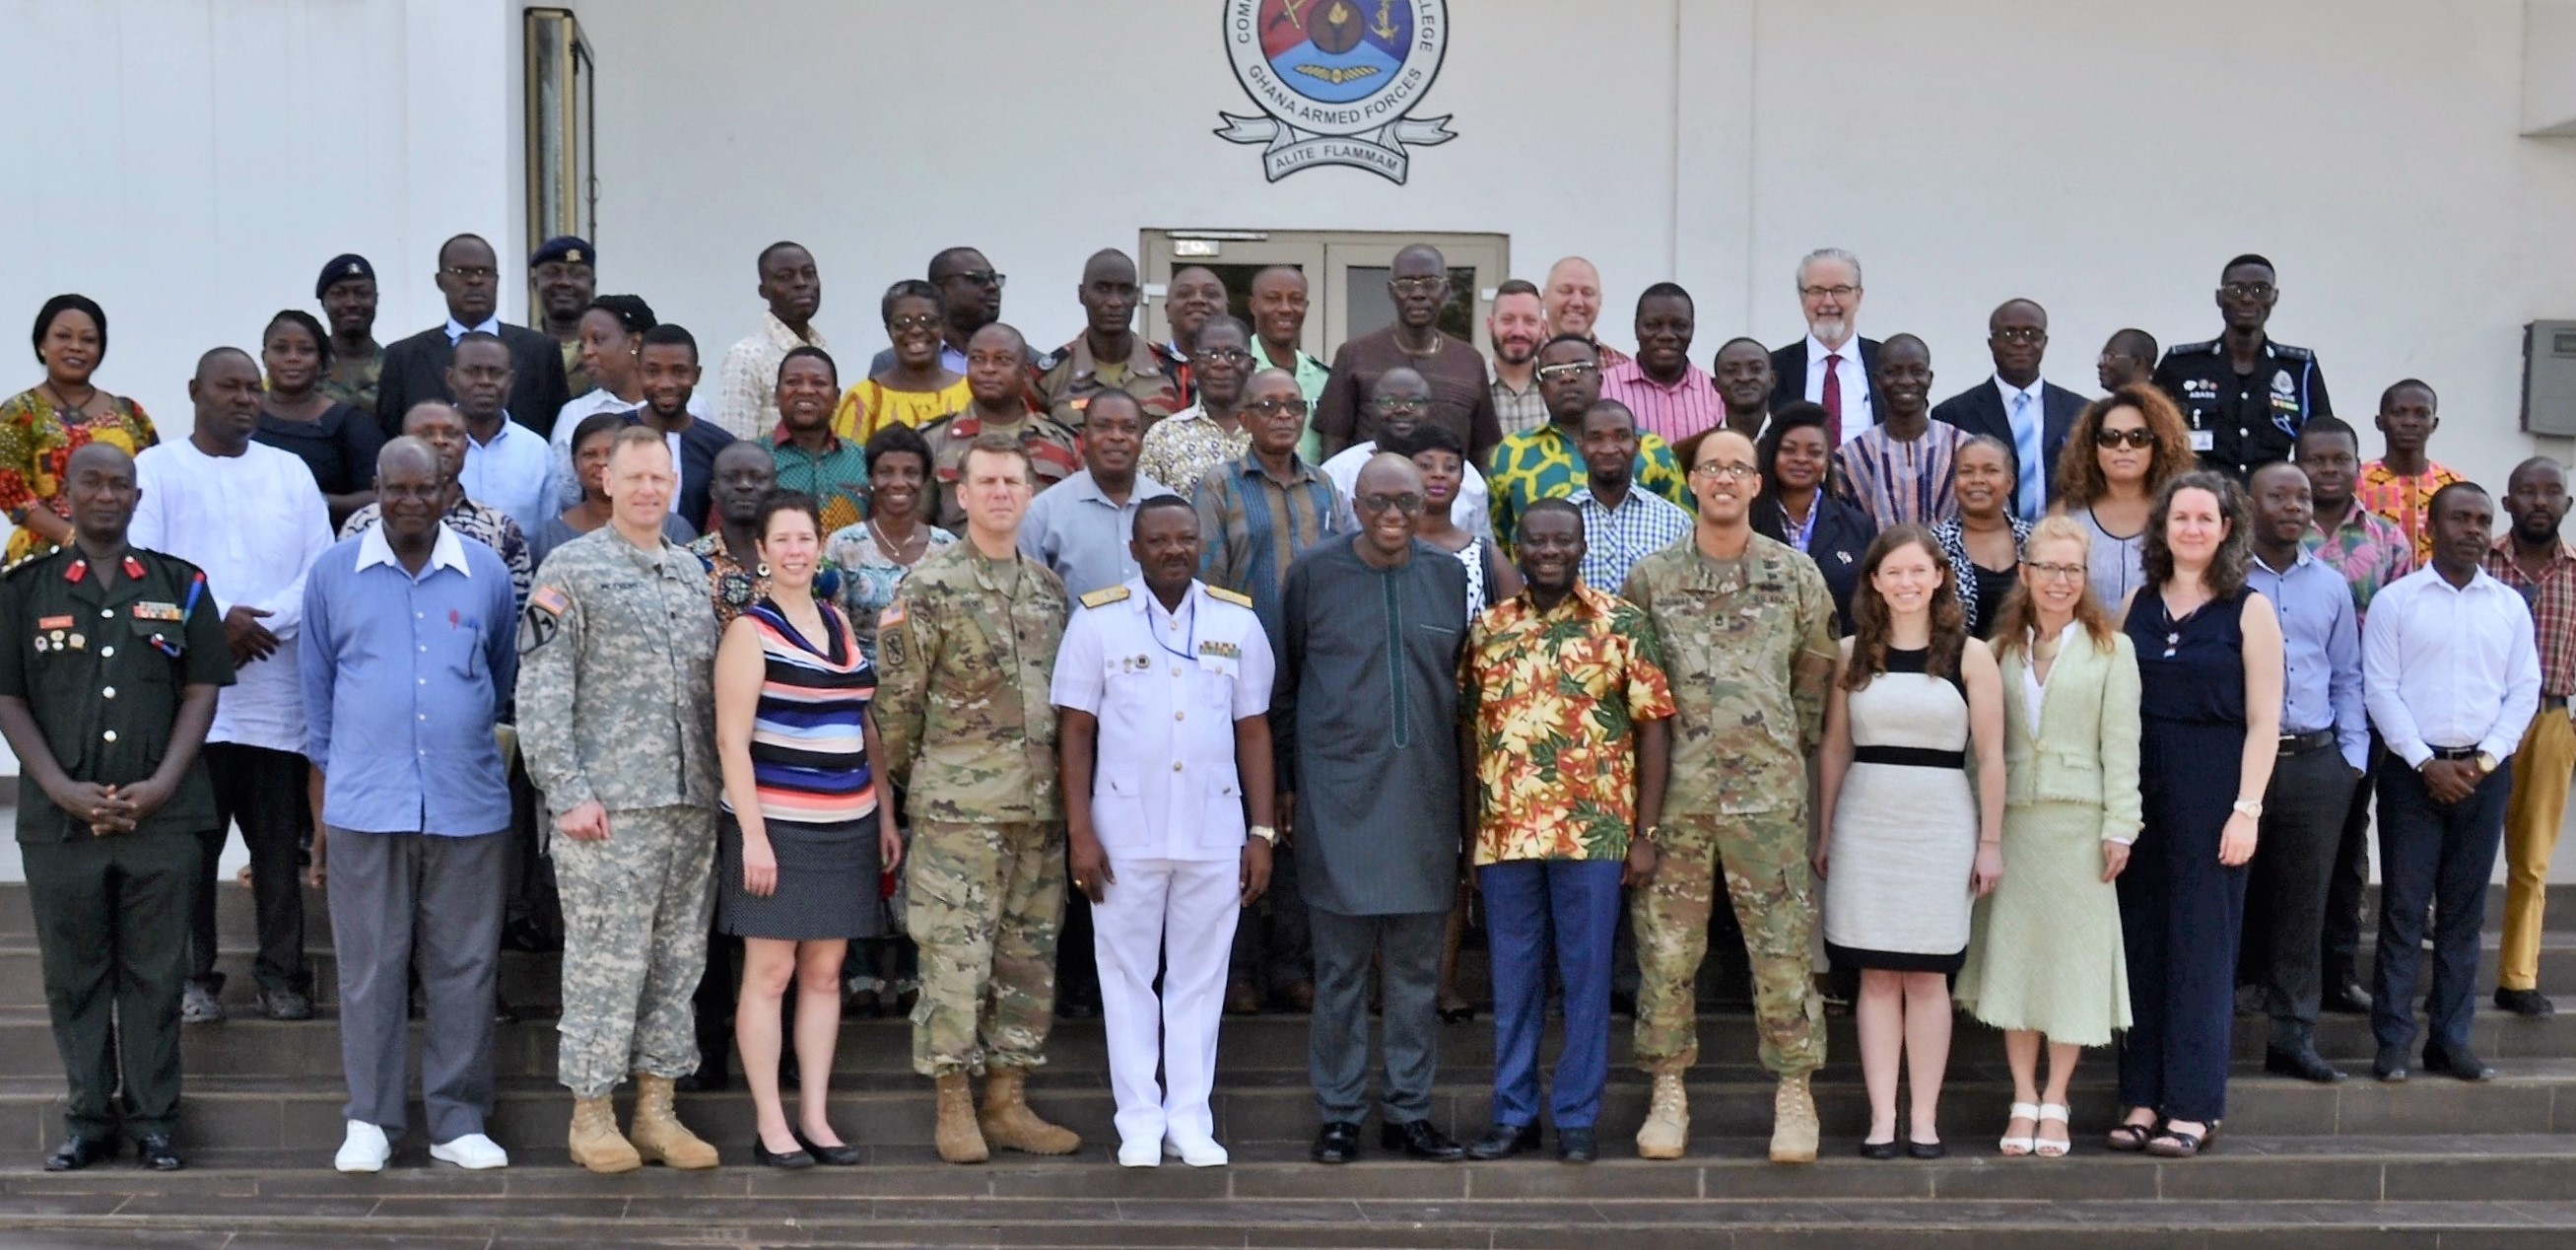 U.S. Africa Command and Ghana's National Disaster Management Organization (NADMO) co-sponsored a natural disaster response forum in Accra.  The event brought together experts in disaster management from multiple organizations in Ghana and the U.S. and was conducted at the Ghana Armed Forces Command and Staff College, March 12-15, 2018. (U.S. AFRICOM photo by Robin Cromer)